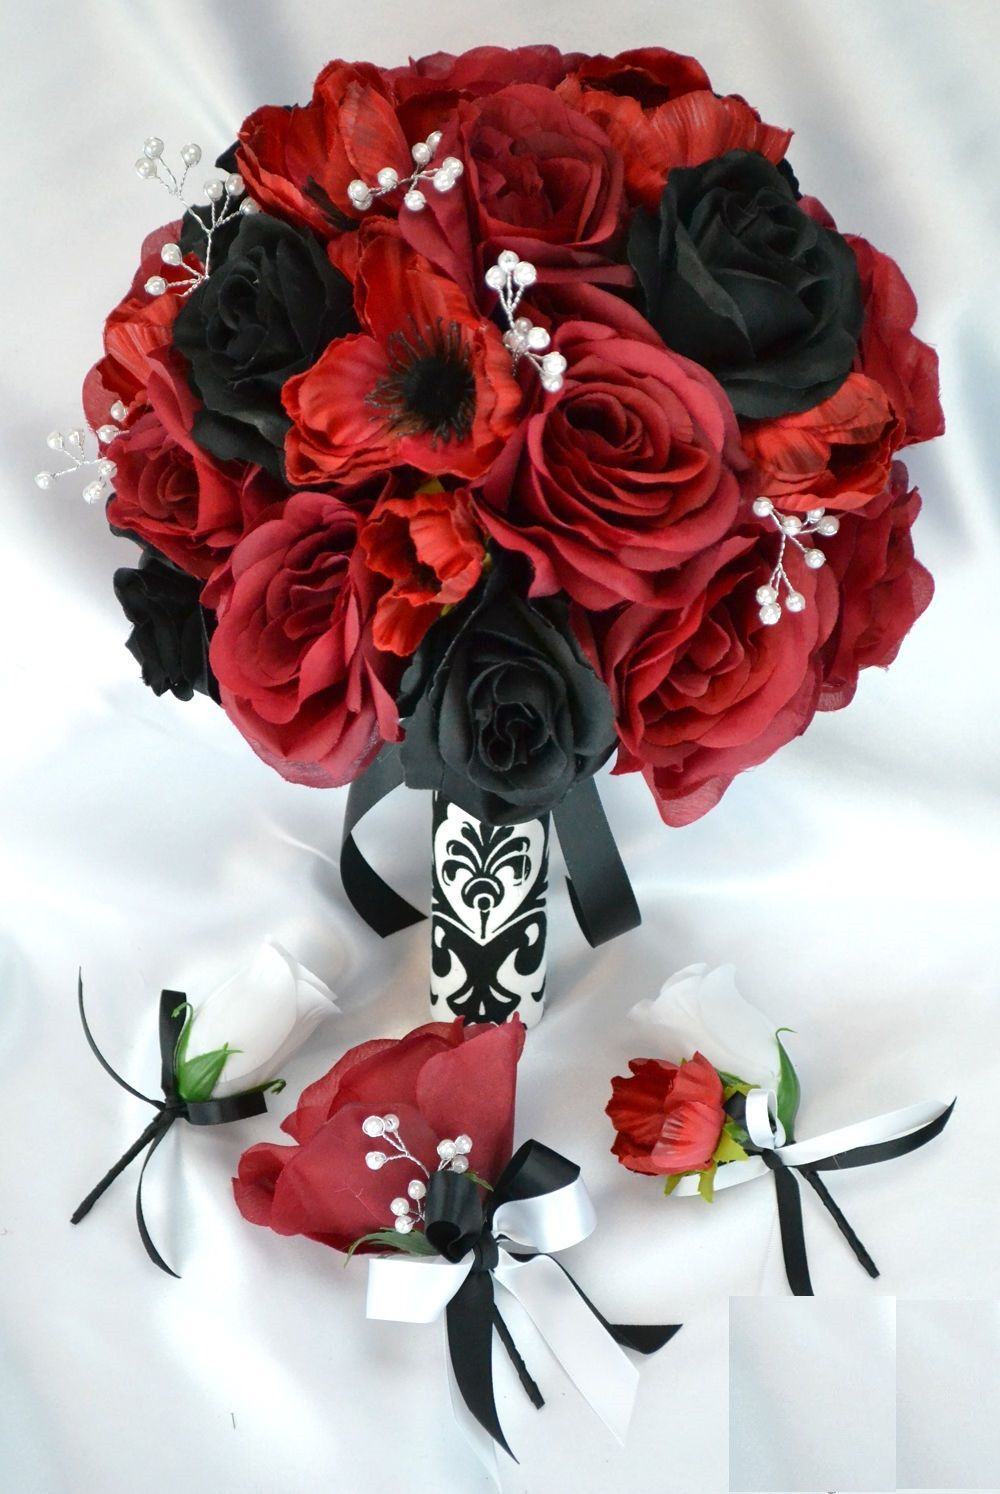 17 Piece Package Silk Flower Wedding Bridal Bouquet Apple Red Black